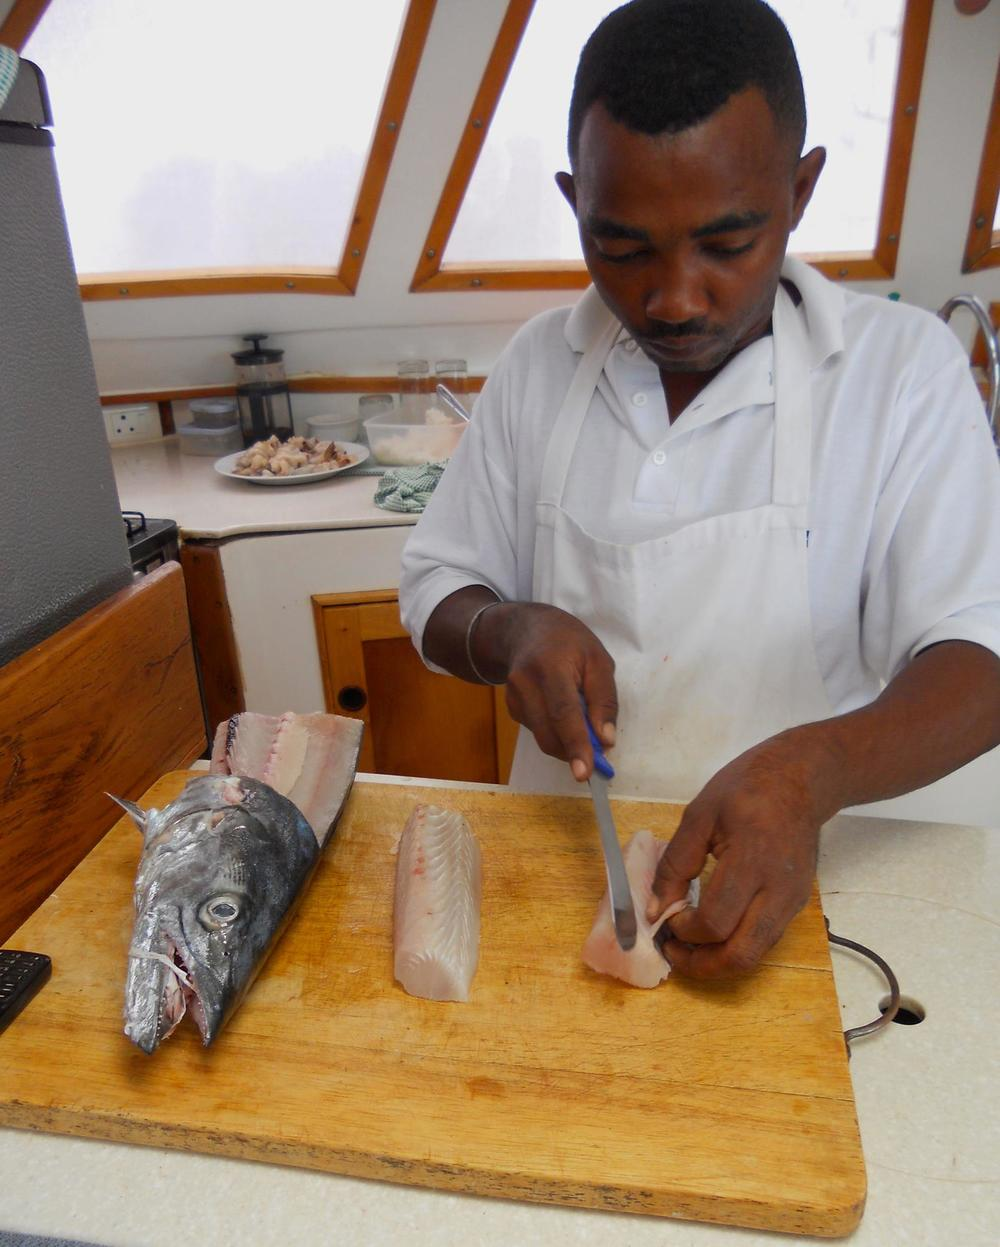 Chef on Board a charter boat